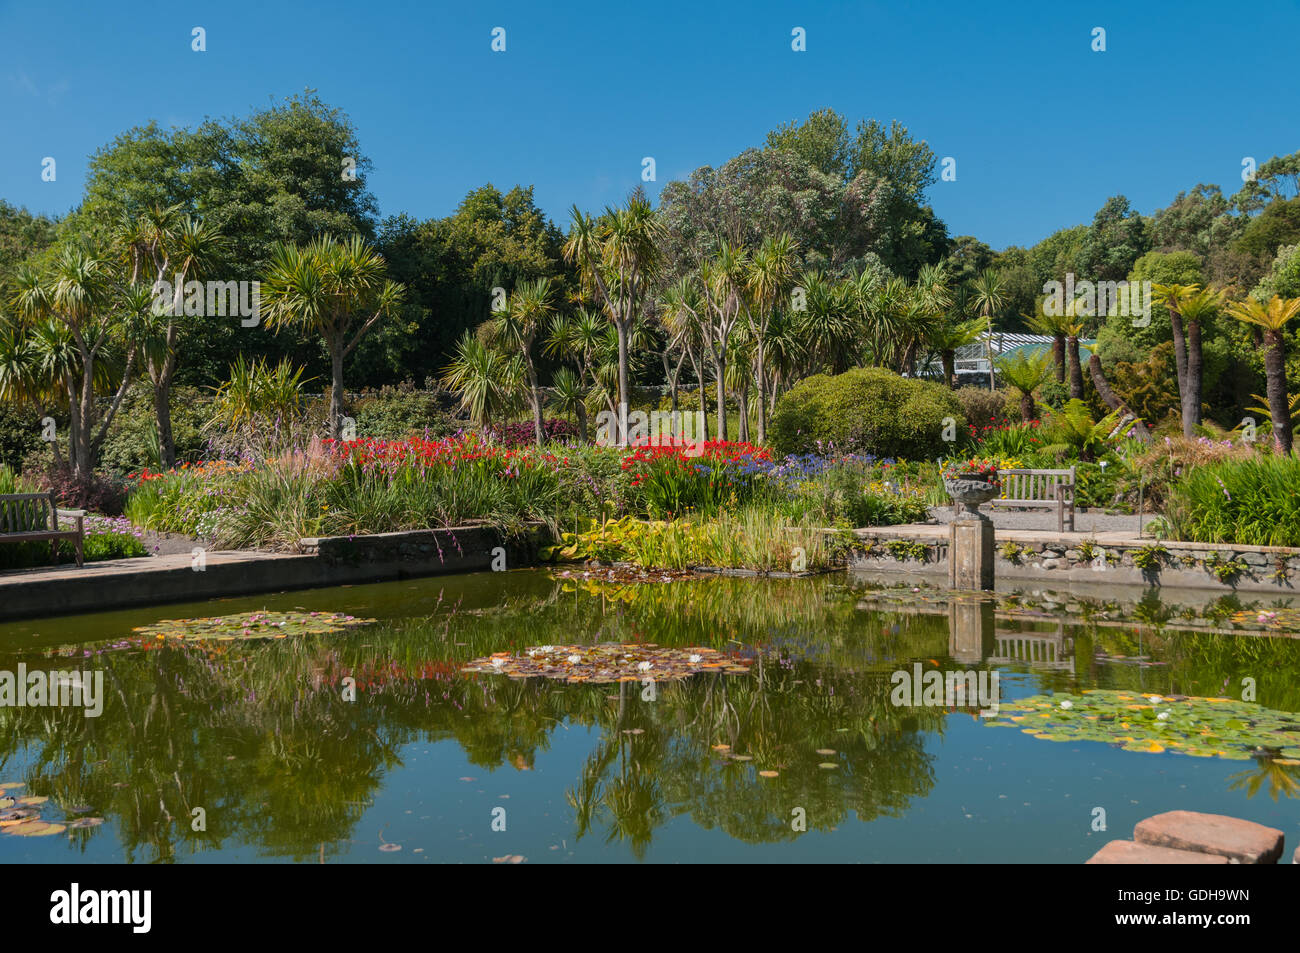 Unusual Lily Pond With Palm Trees And Flowers Logan Botanic Garden Port  With Lovable Lily Pond With Palm Trees And Flowers Logan Botanic Garden Port Logan  Dumfries  Galloway Scotland With Amusing Somerset Gardens Pharmacy Also Home Office In Garden In Addition Whimsical Garden Stakes And Exbury Gardens  For  As Well As Garden Images Uk Additionally Applestore Covent Garden From Alamycom With   Lovable Lily Pond With Palm Trees And Flowers Logan Botanic Garden Port  With Amusing Lily Pond With Palm Trees And Flowers Logan Botanic Garden Port Logan  Dumfries  Galloway Scotland And Unusual Somerset Gardens Pharmacy Also Home Office In Garden In Addition Whimsical Garden Stakes From Alamycom